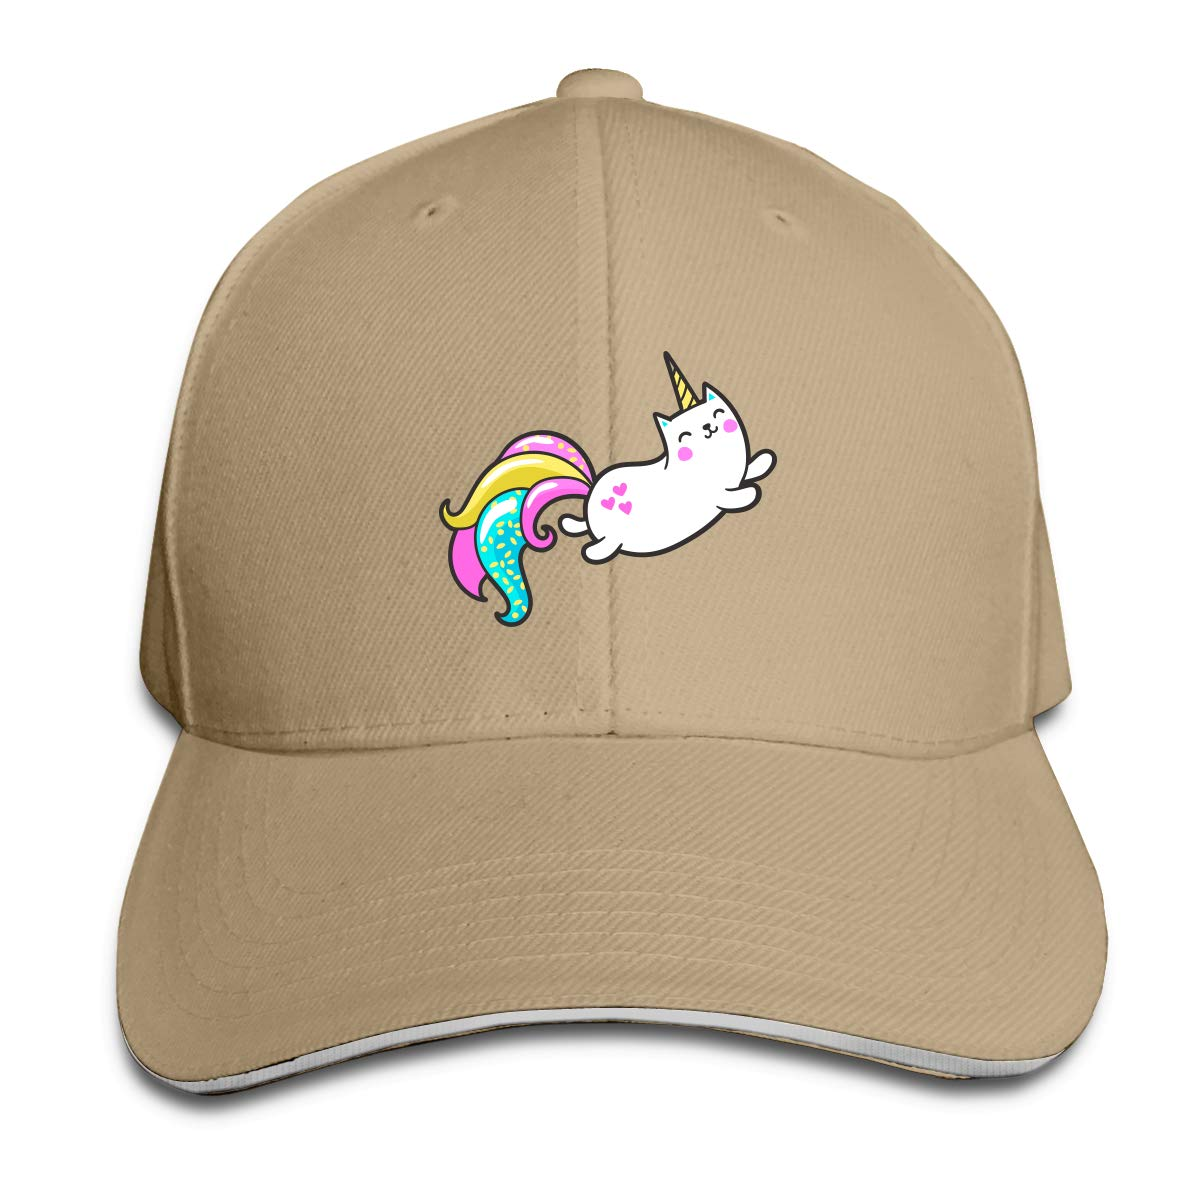 WFIRE Adult Baseball Caps Cute Unicorn Cat Custom Adjustable Sandwich Cap Casquette Hats